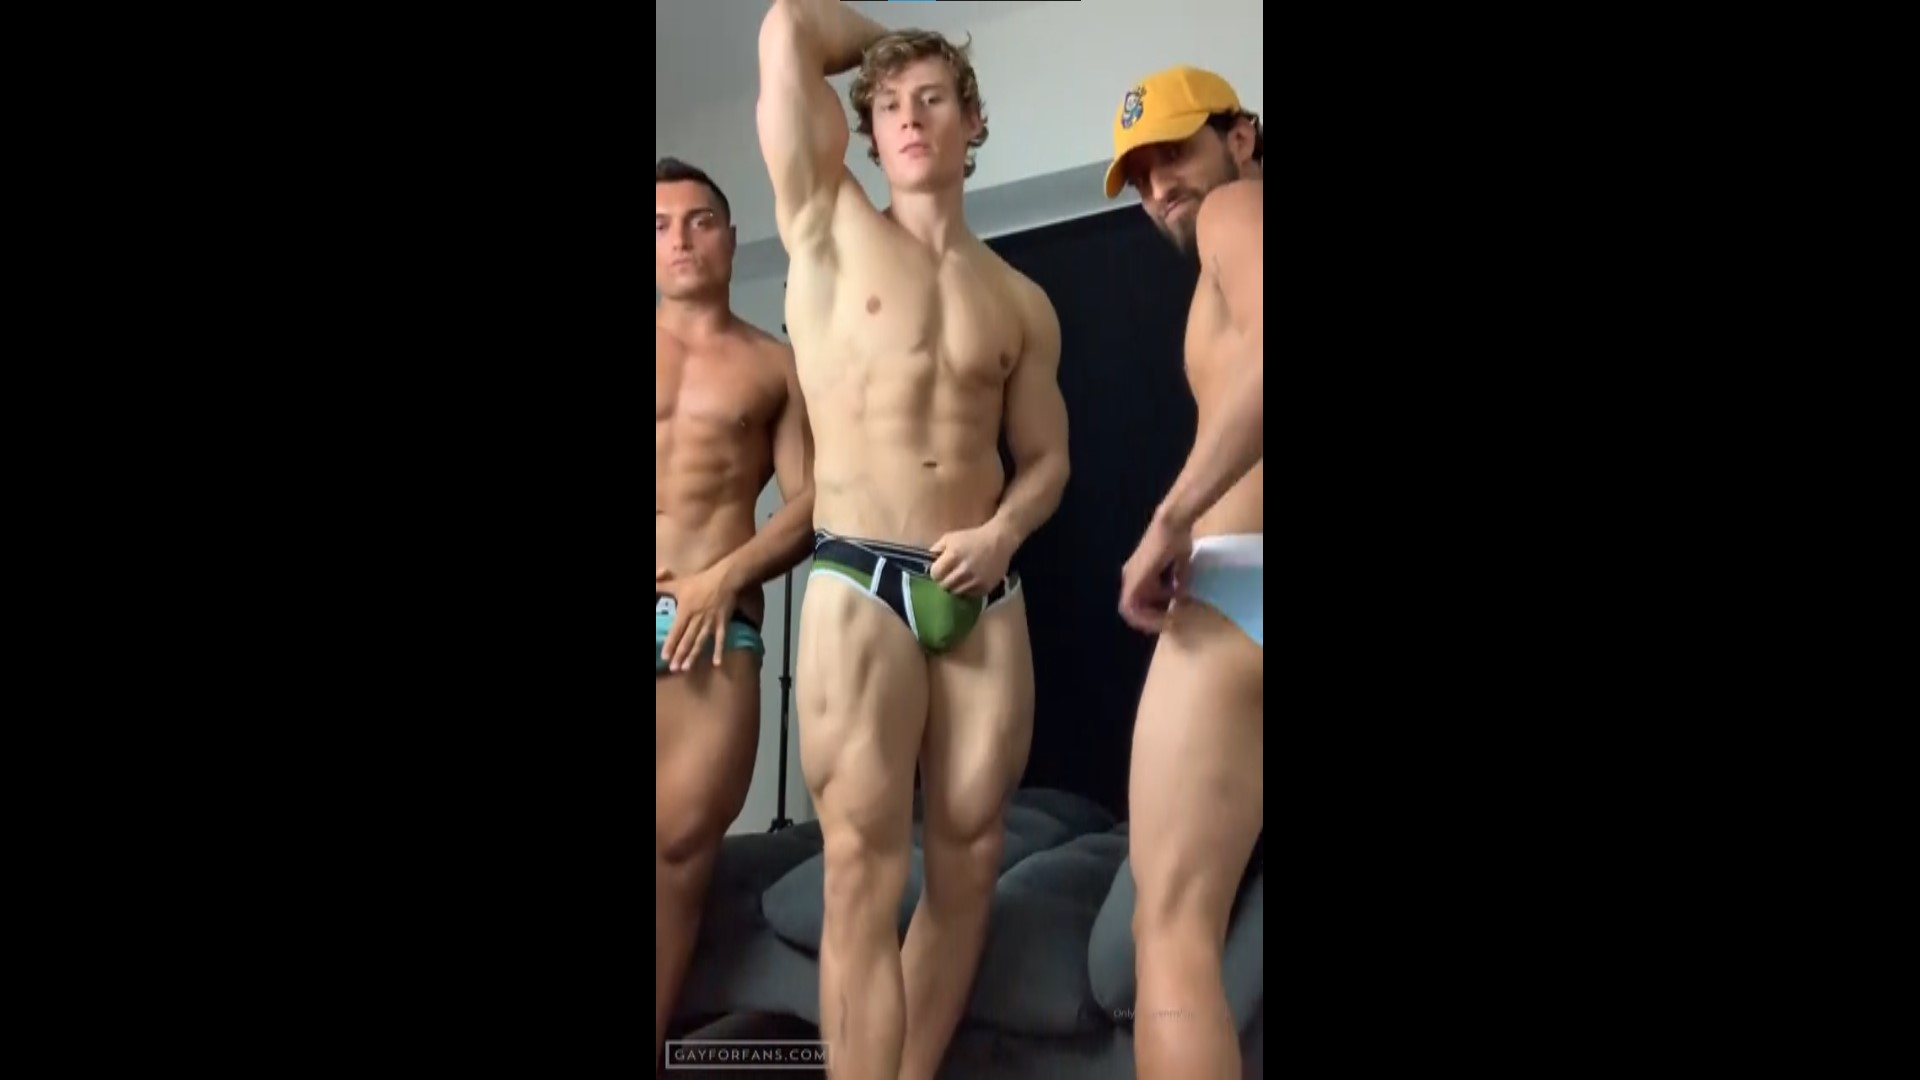 Flexing in my underwear with my mates - ShreddedC